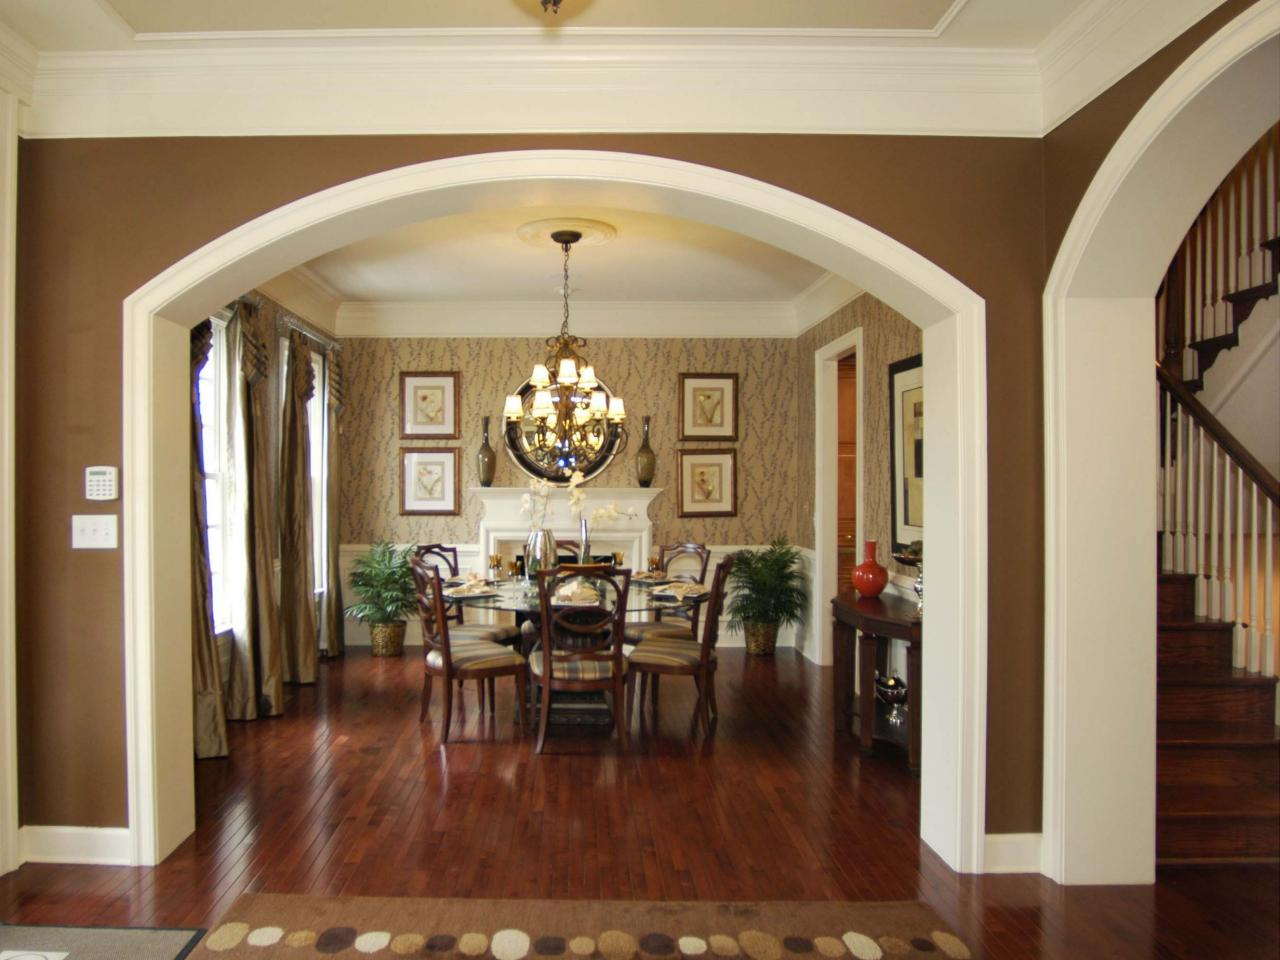 Neutral Traditional Dining Room With Dramatic Archway | HGTV